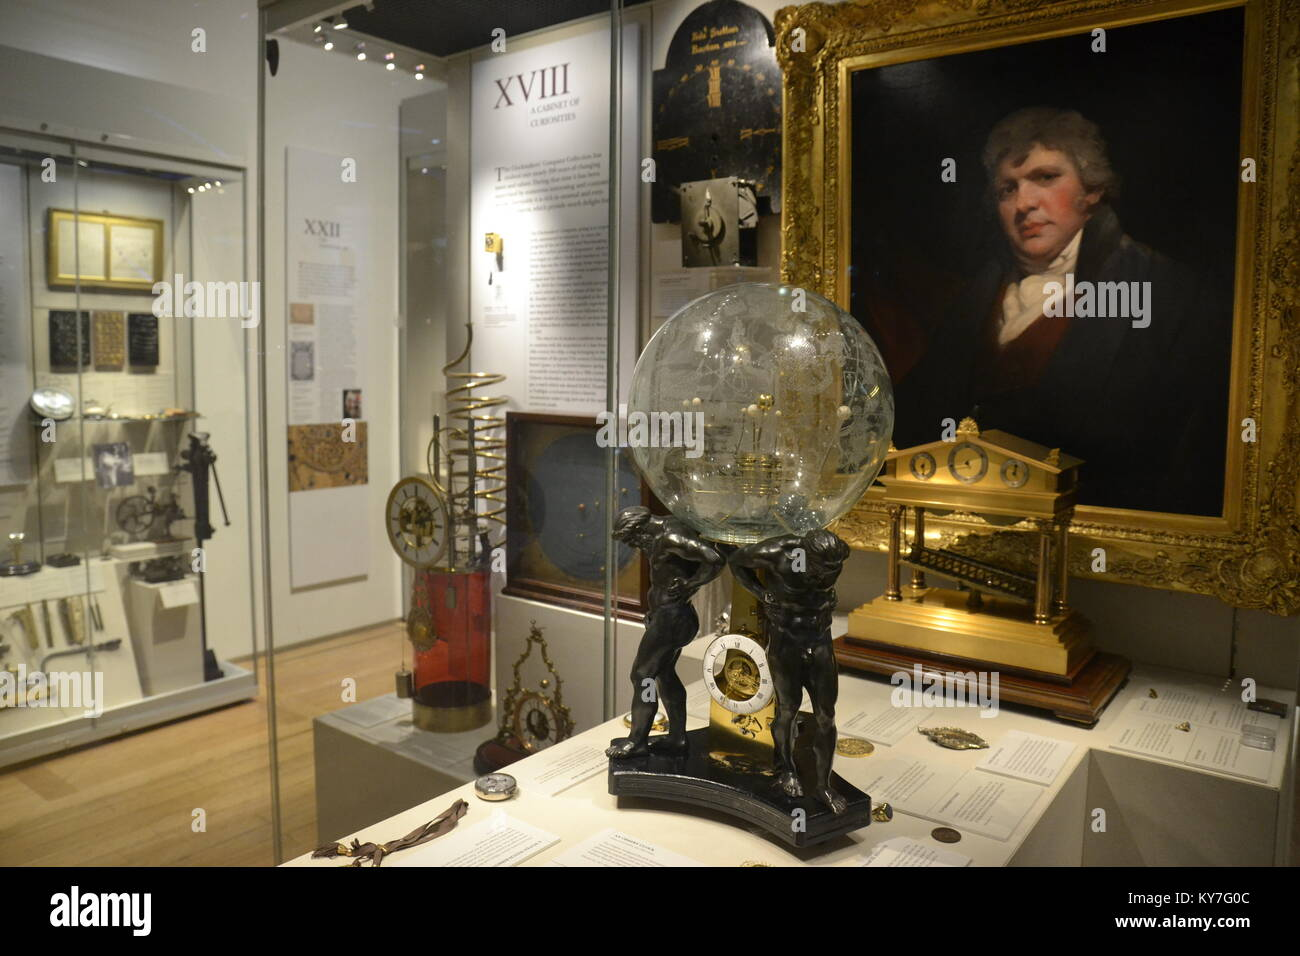 A Cabinet of Curiosities in the Clock and Time Gallery at the Science Museum, London - Stock Image